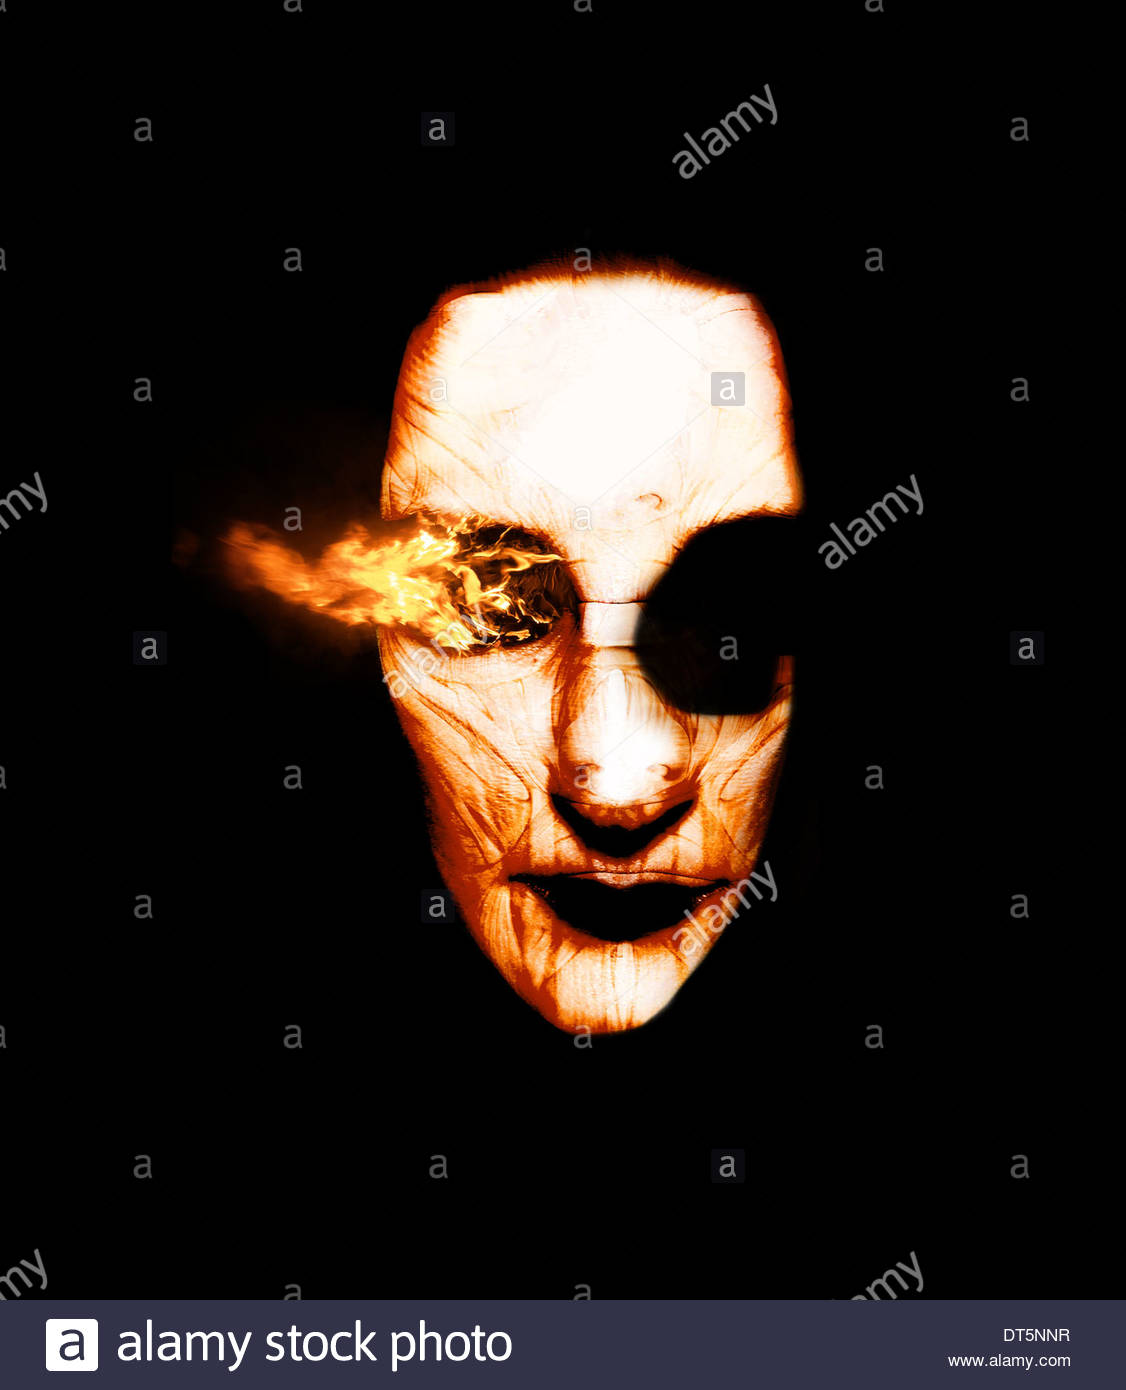 Visions Of Fire Burn From The Eye Of A Scorched Sorcerers Head In A Frightening Fiery Apparition Of Being Burnt Stock Foto